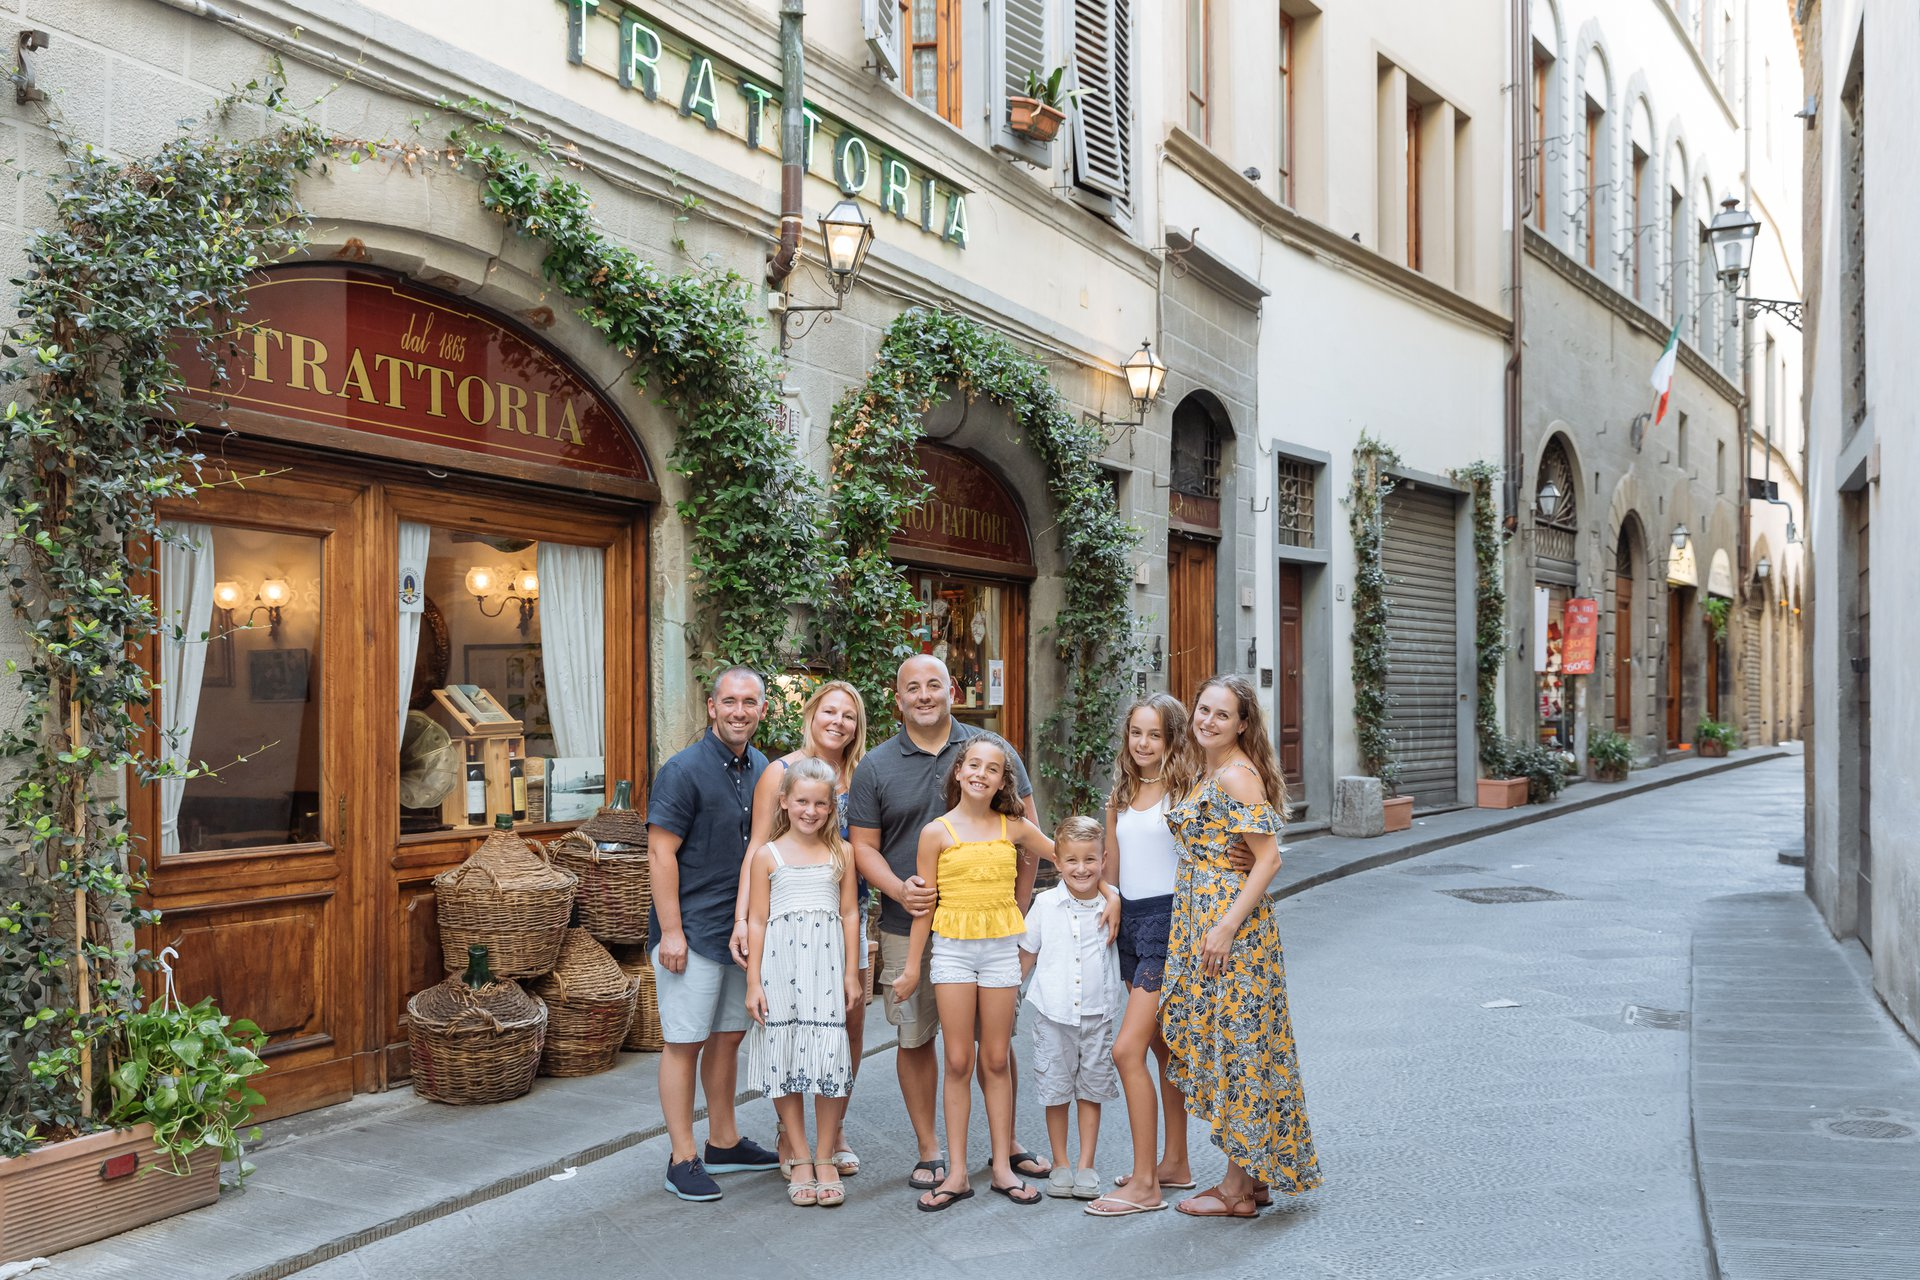 Florence-Italy-travel-story-Flytographer-46